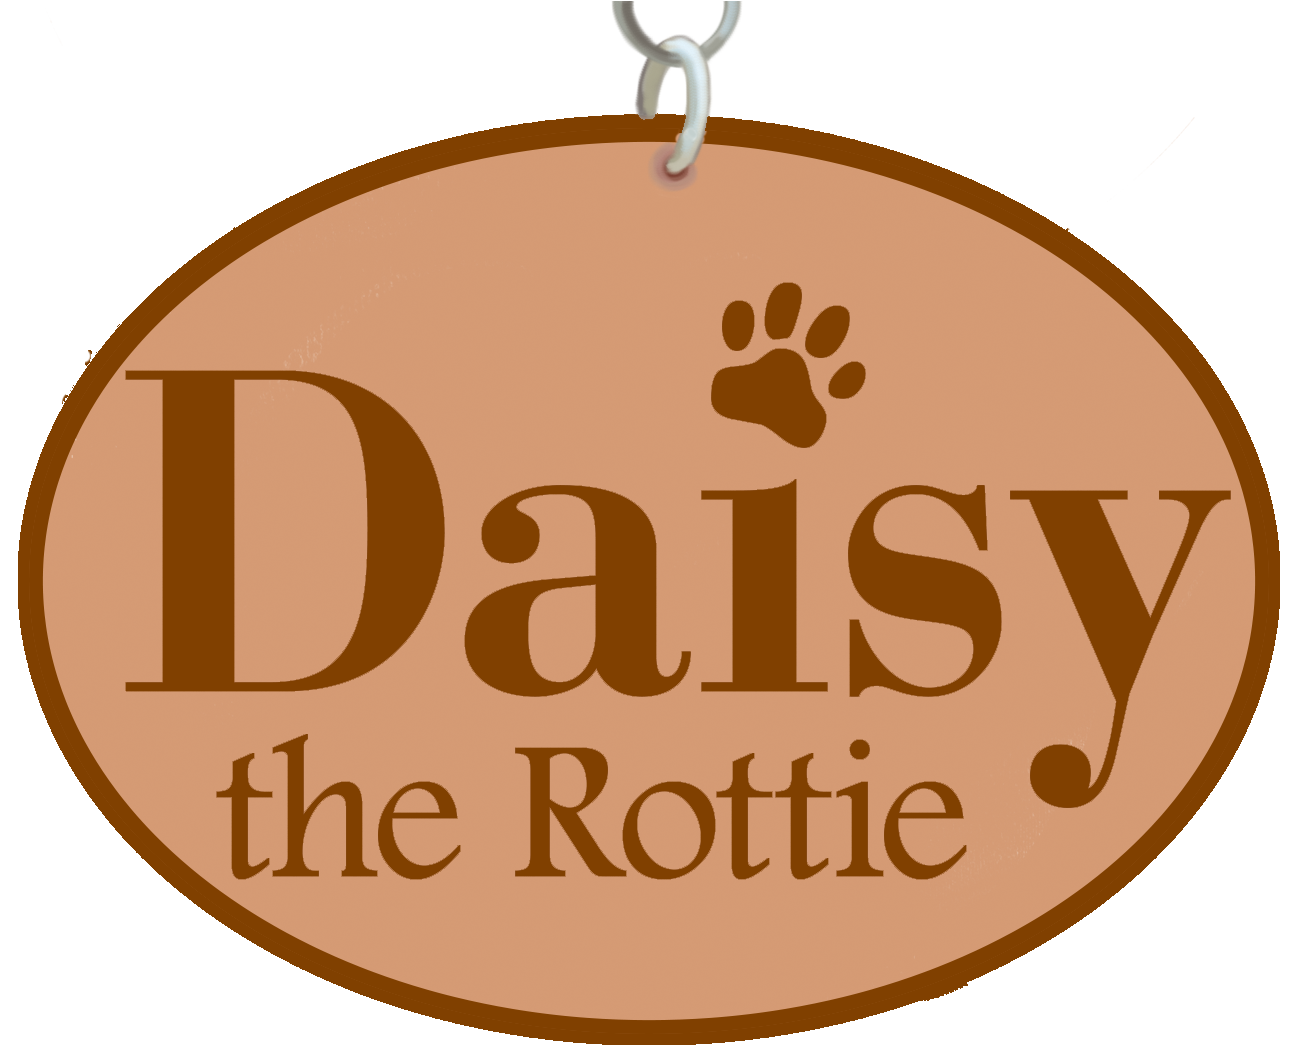 Daisy the Rottie